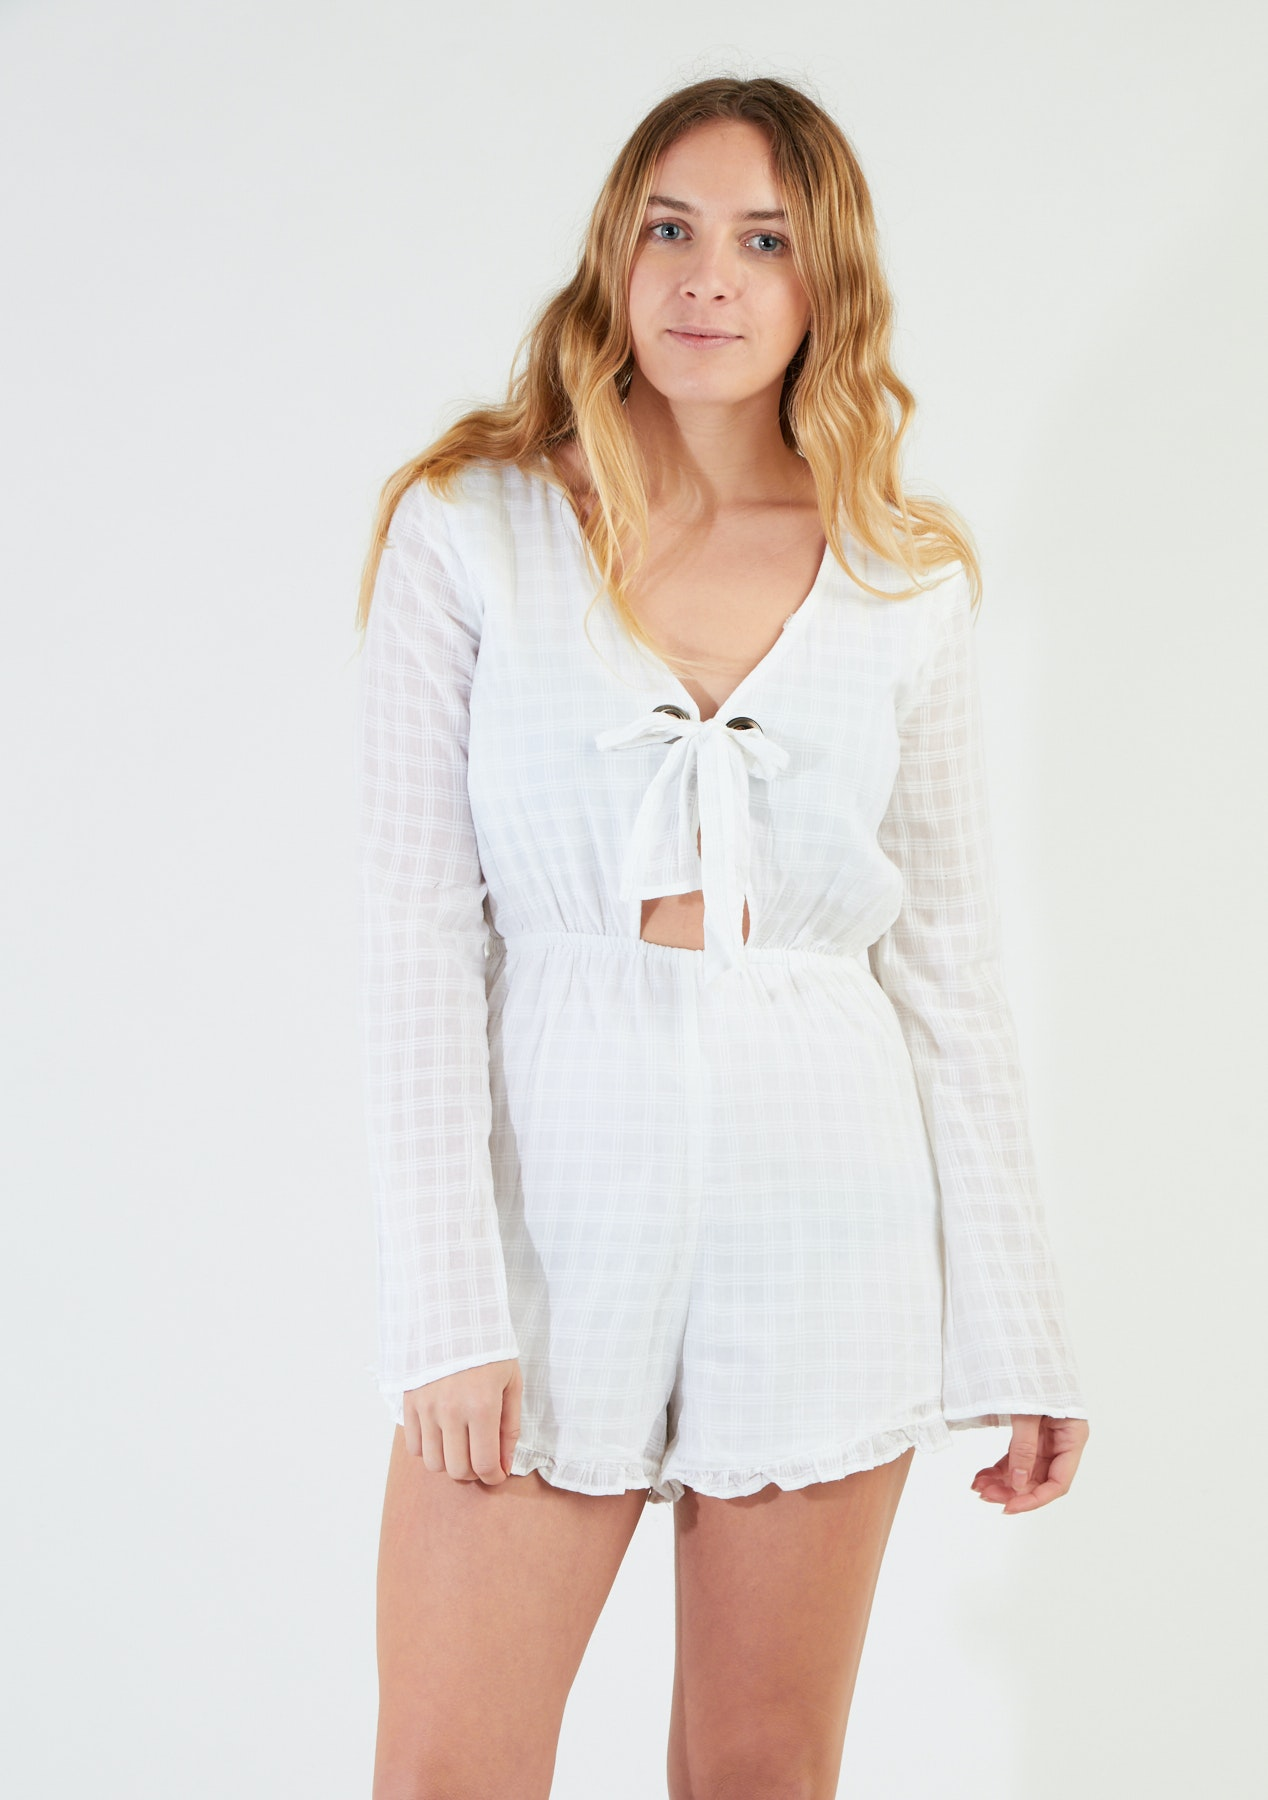 a23278c61e04 All About Eve - Avery Playsuit - White - Shopping Spree Womens Under  50 -  Onceit